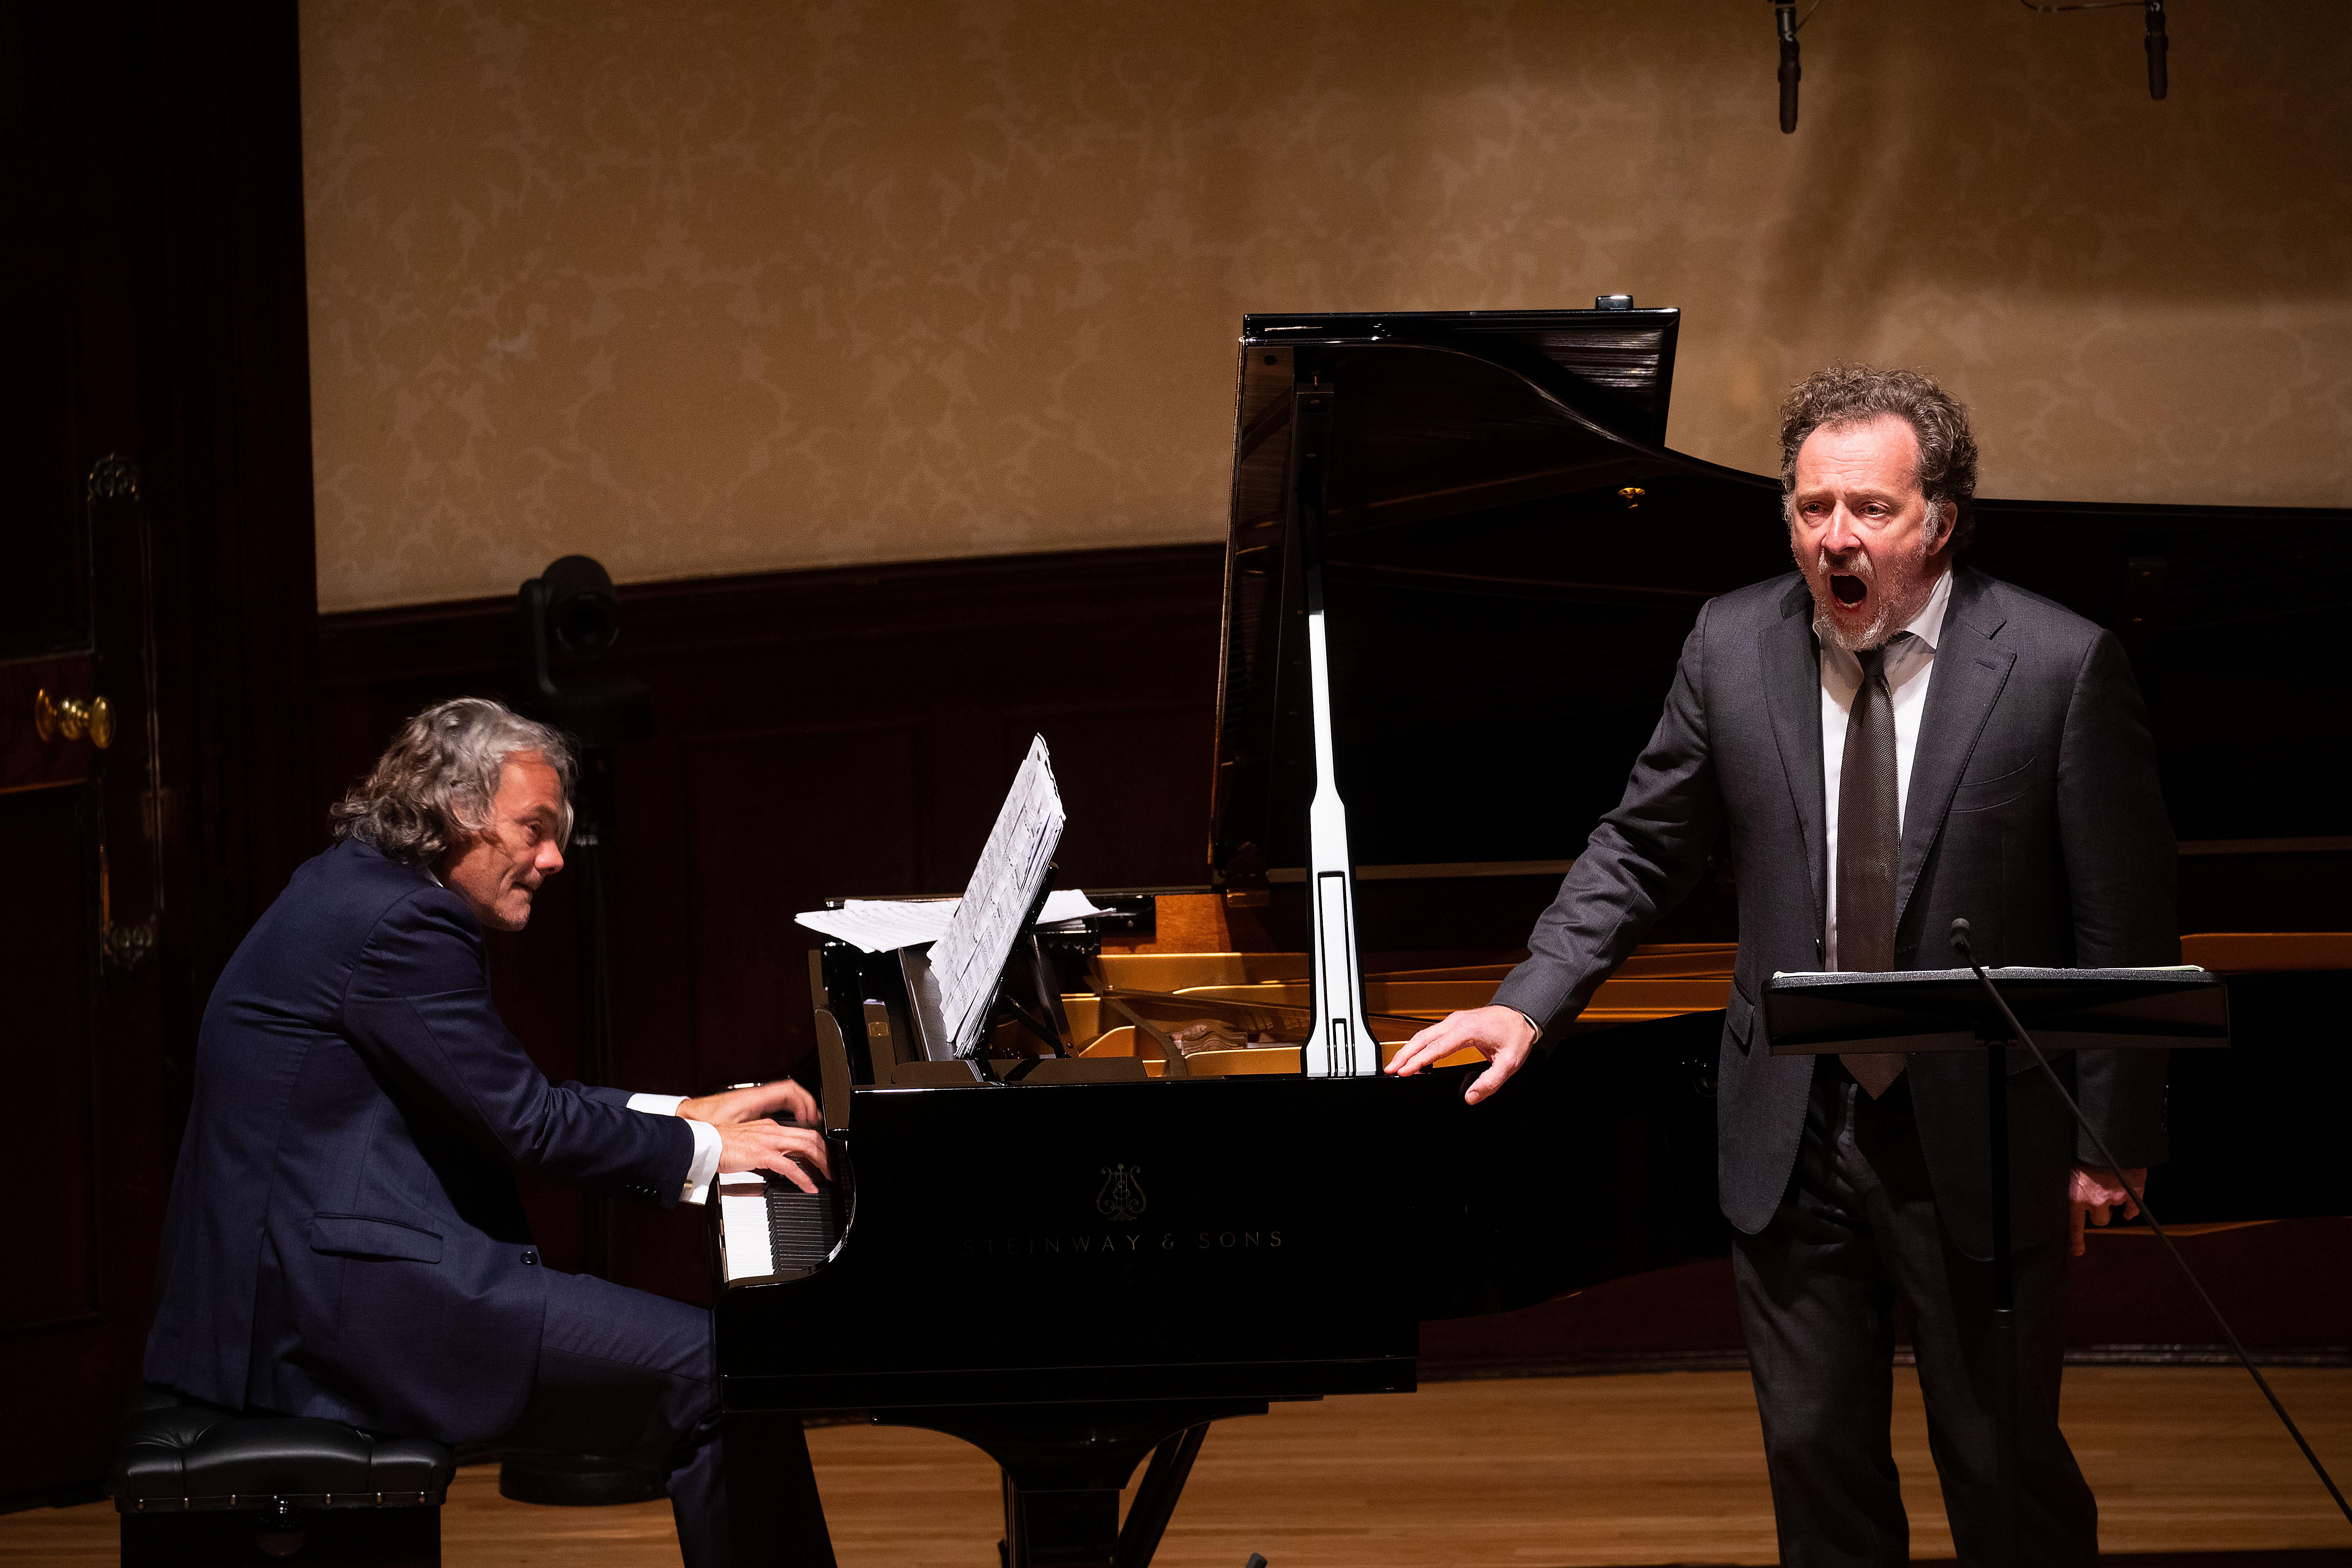 EDITORIAL USE ONLY Baritone Christian Gerhaher and pianist Gerold Huber perform songs by Schubert and Berg at a recital to launch the new season at Wigmore Hall as it becomes the first major UK music venue to welcome back live audiences, London.